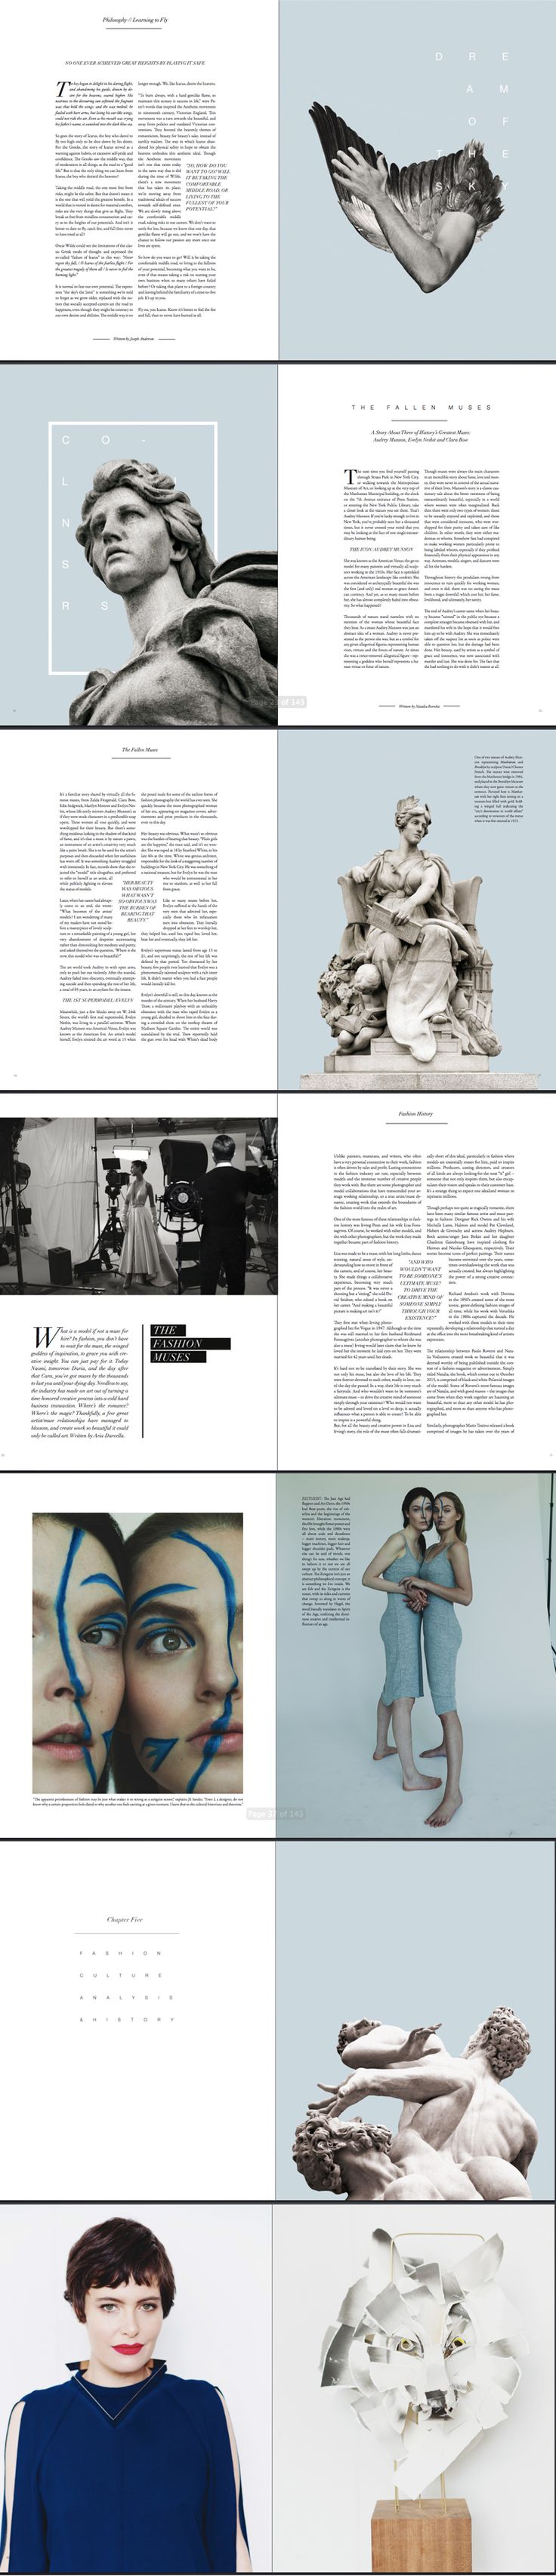 Lone Wolf Magazine, Volume 12 Layout Design | Graphic Design | Magazine Layout #article #pullquote #quote #blockout #image